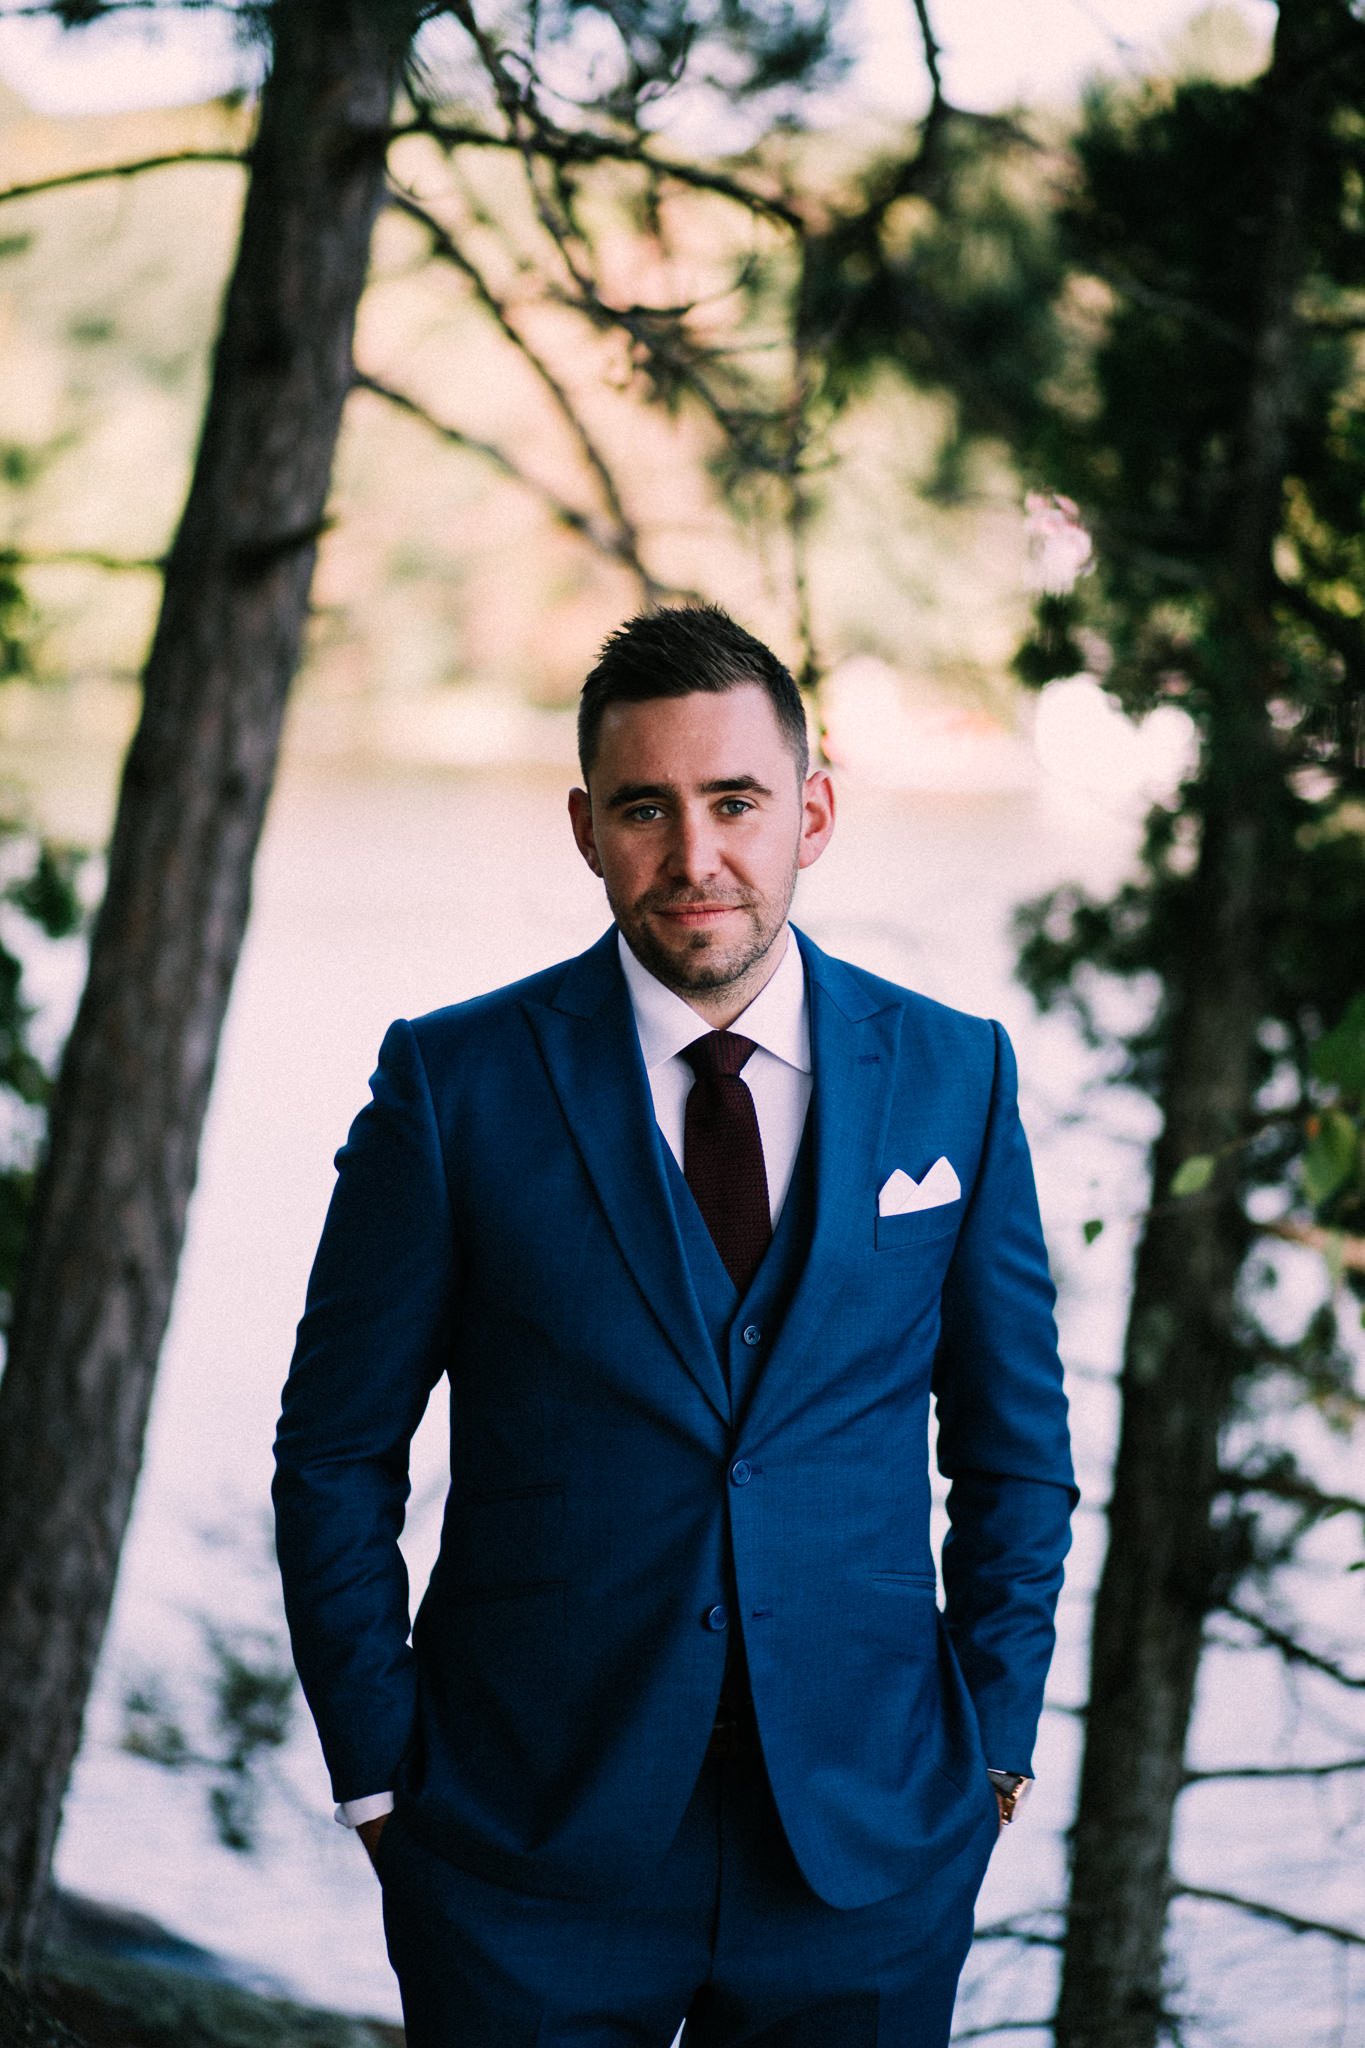 Muskoka lakeside wedding at Port Cunnington Lodge by Max Wong Photo (27)